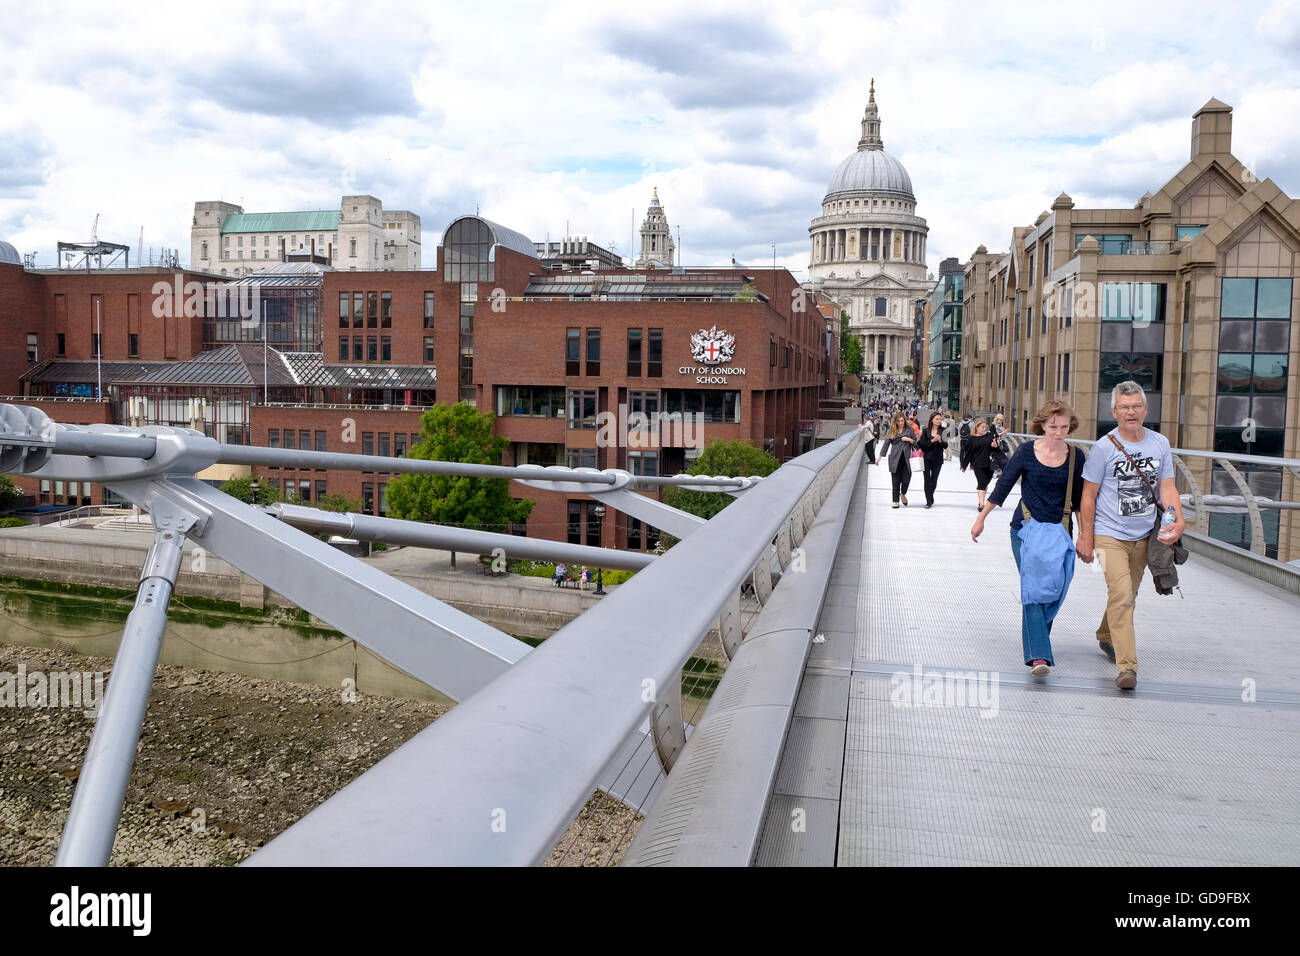 London, United Kingdom. St Paul's cathedral a London landmark from the Millennium Bridge which crosses the Thames - Stock Image